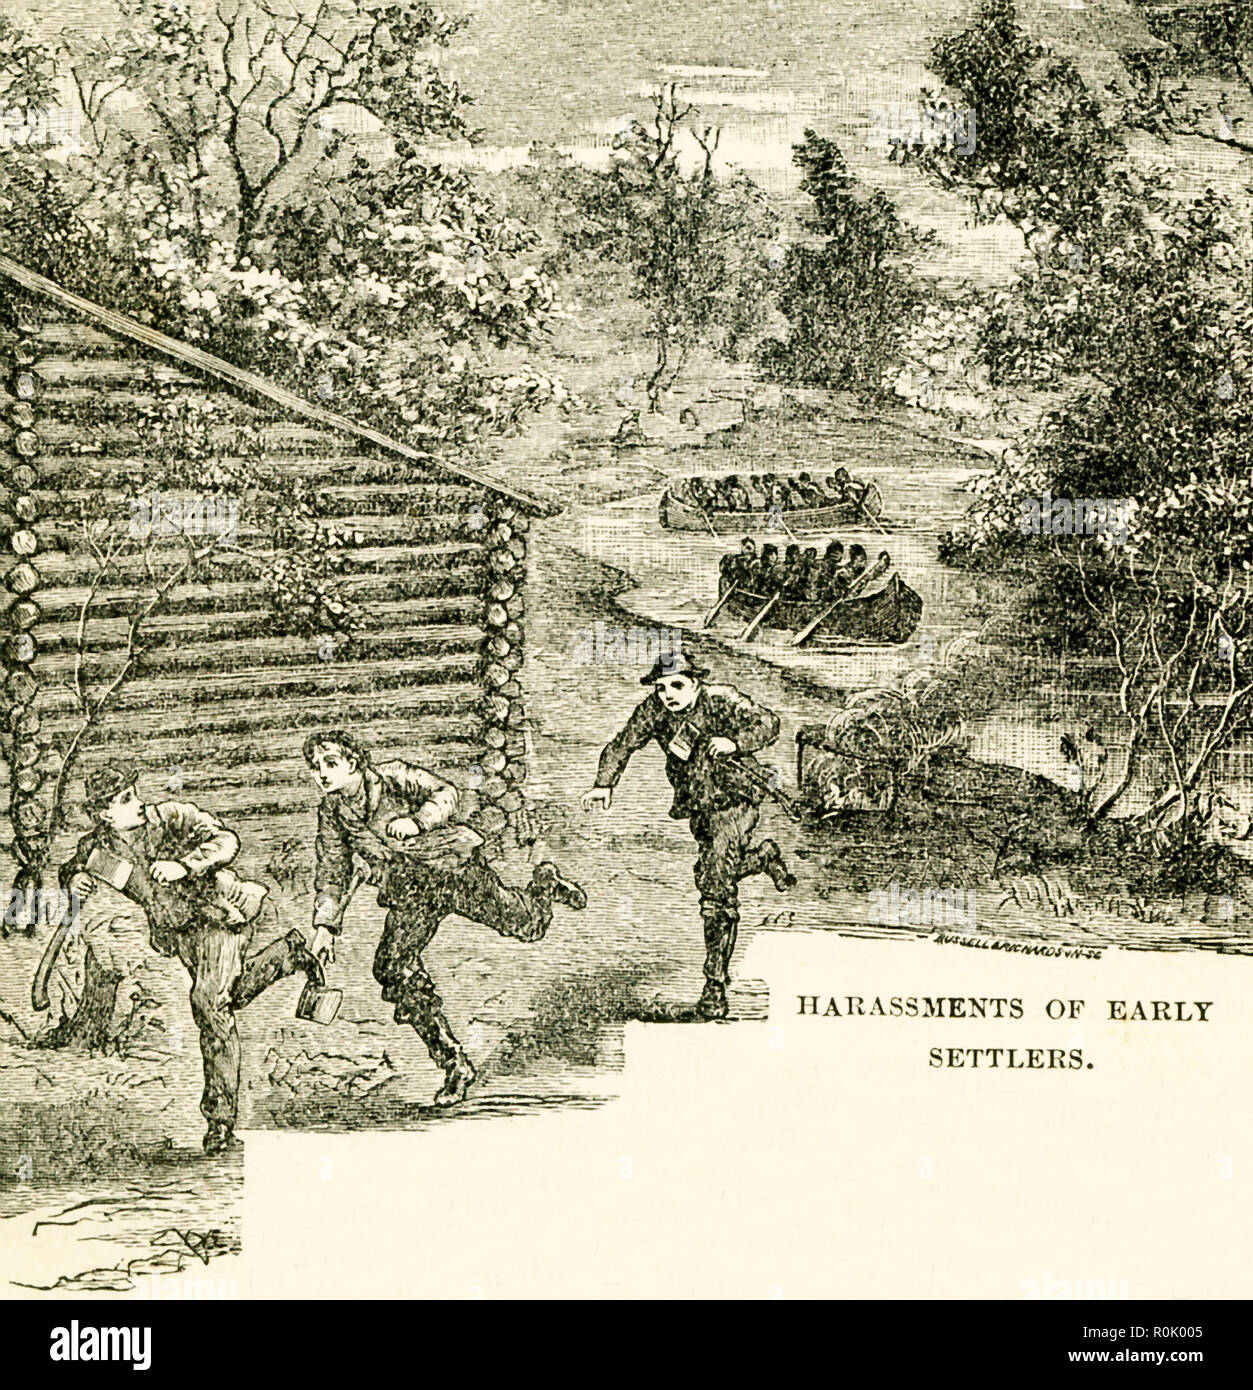 The Caption reads: Harrassment of Early Settlers. It details Native Americans attacking Boonesborough and other settlements in Kentucky. This illustration is from the book titled: Story of the Wild West and Camp Fire Chats: Being the Complete and Authentic History of the Great Heroes of the Western Plains, Buffalo Bill, Wild Bill, Kit Carson, Daniel Boone, Davy Crockett, Sam Houston, and Generals Crooks, Miles and Custer. It was first published in 1888. This edition was published in 1902. - Stock Image